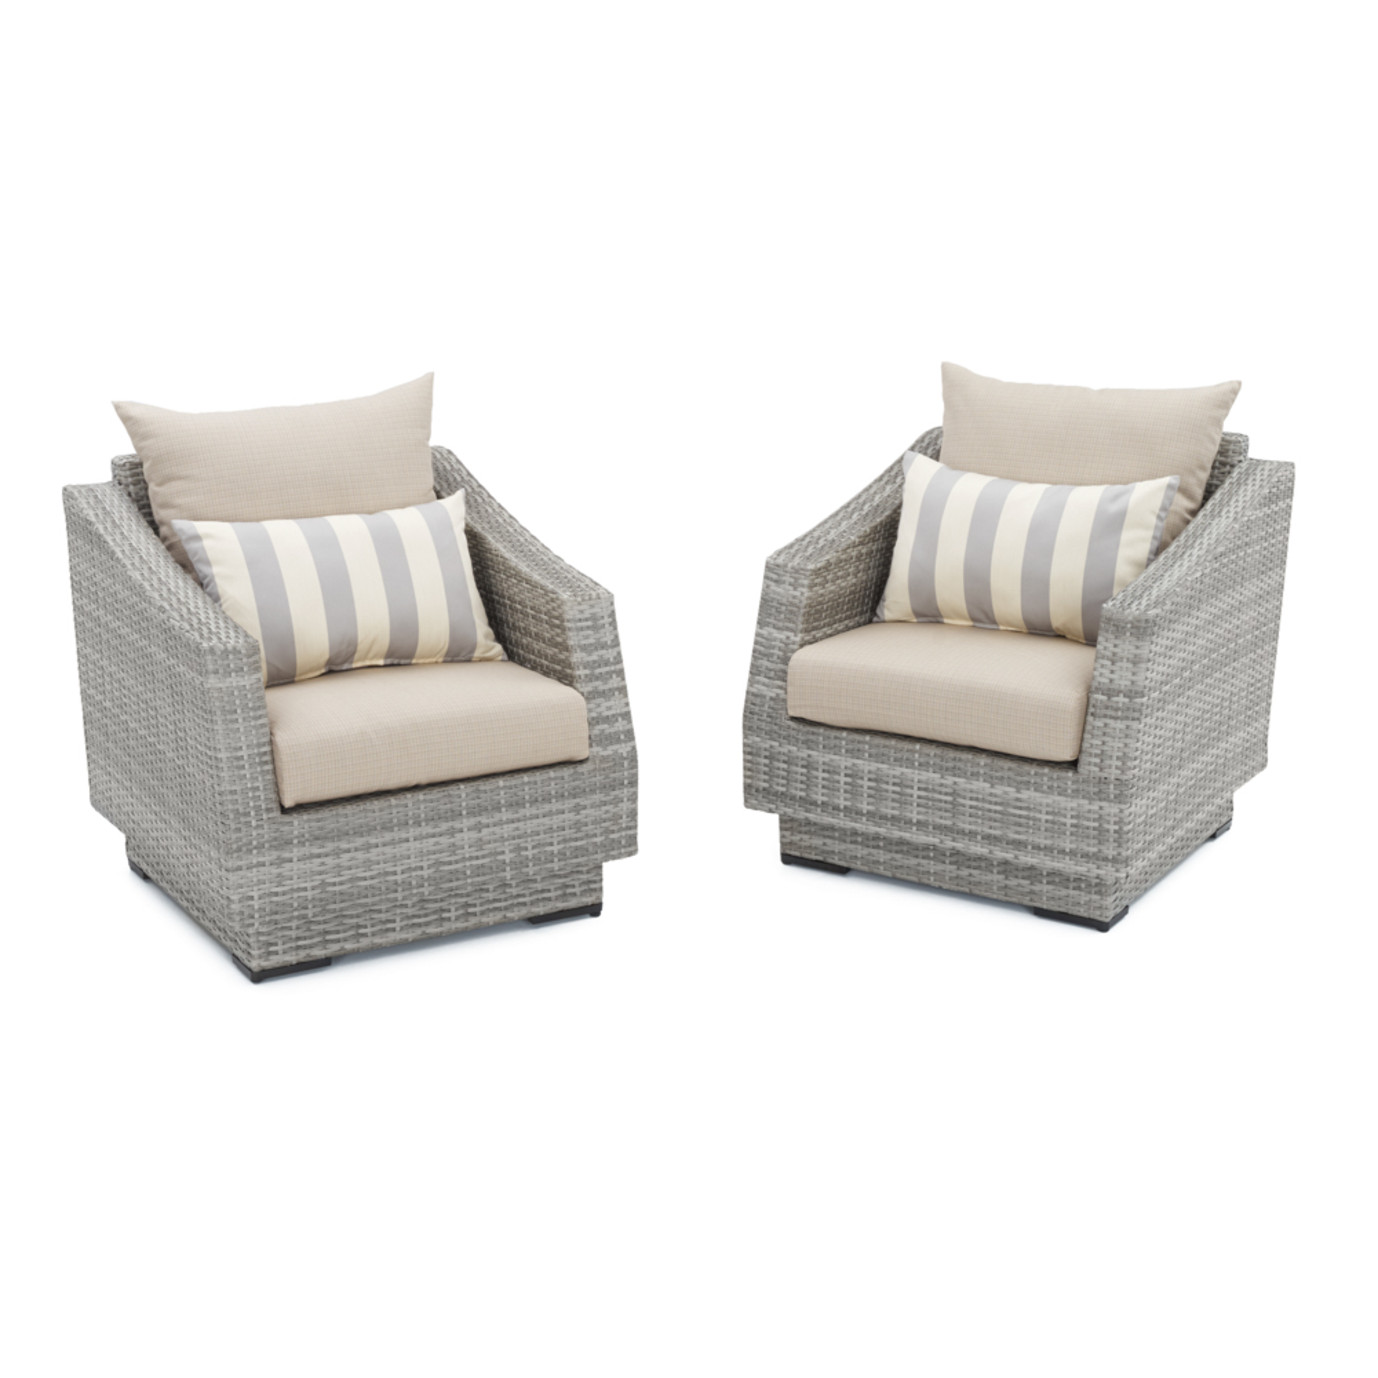 Cannes™ Club Chairs - Slate Gray